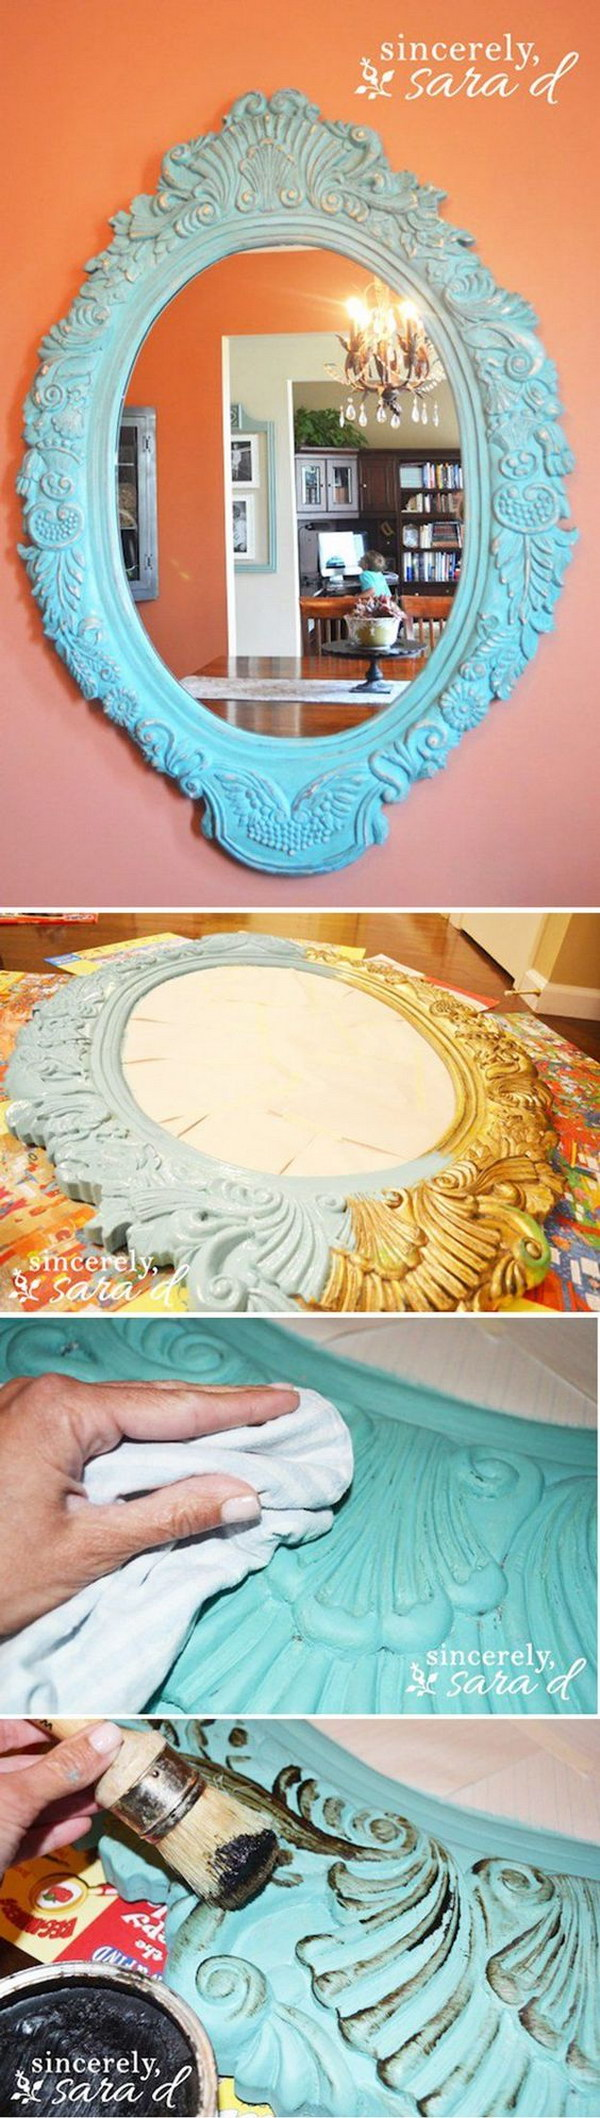 30  diy ideas & tutorials to get shabby chic style   styletic